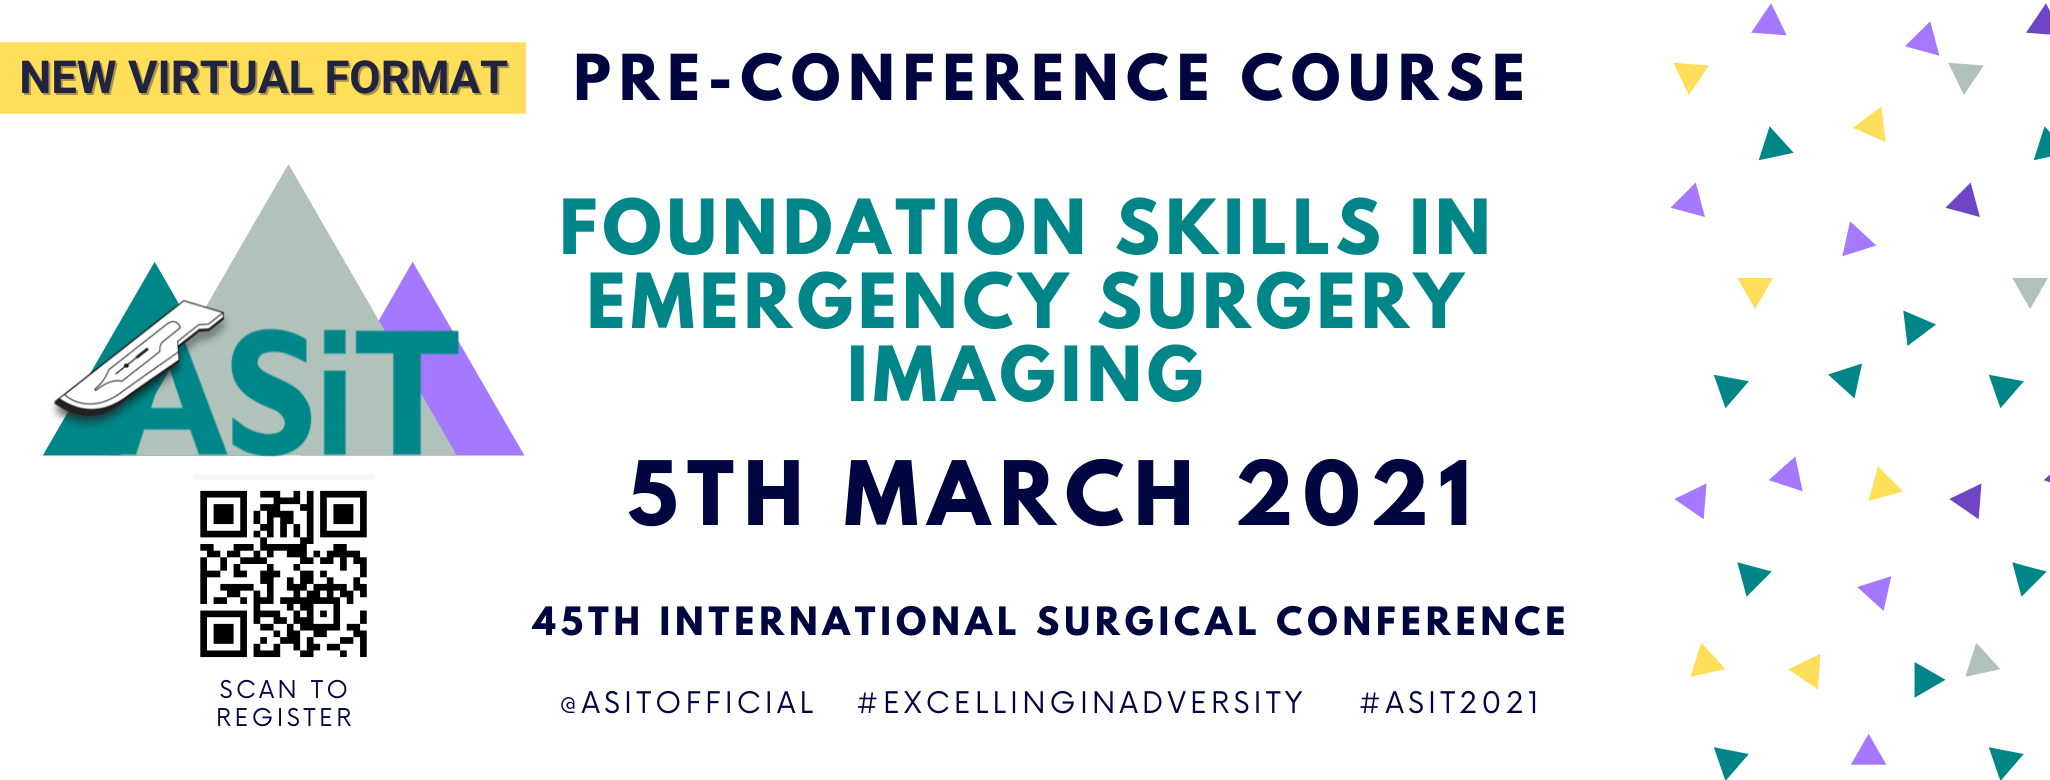 Foundation Skills in Emergency Surgery Imaging: Pre-Conference Course